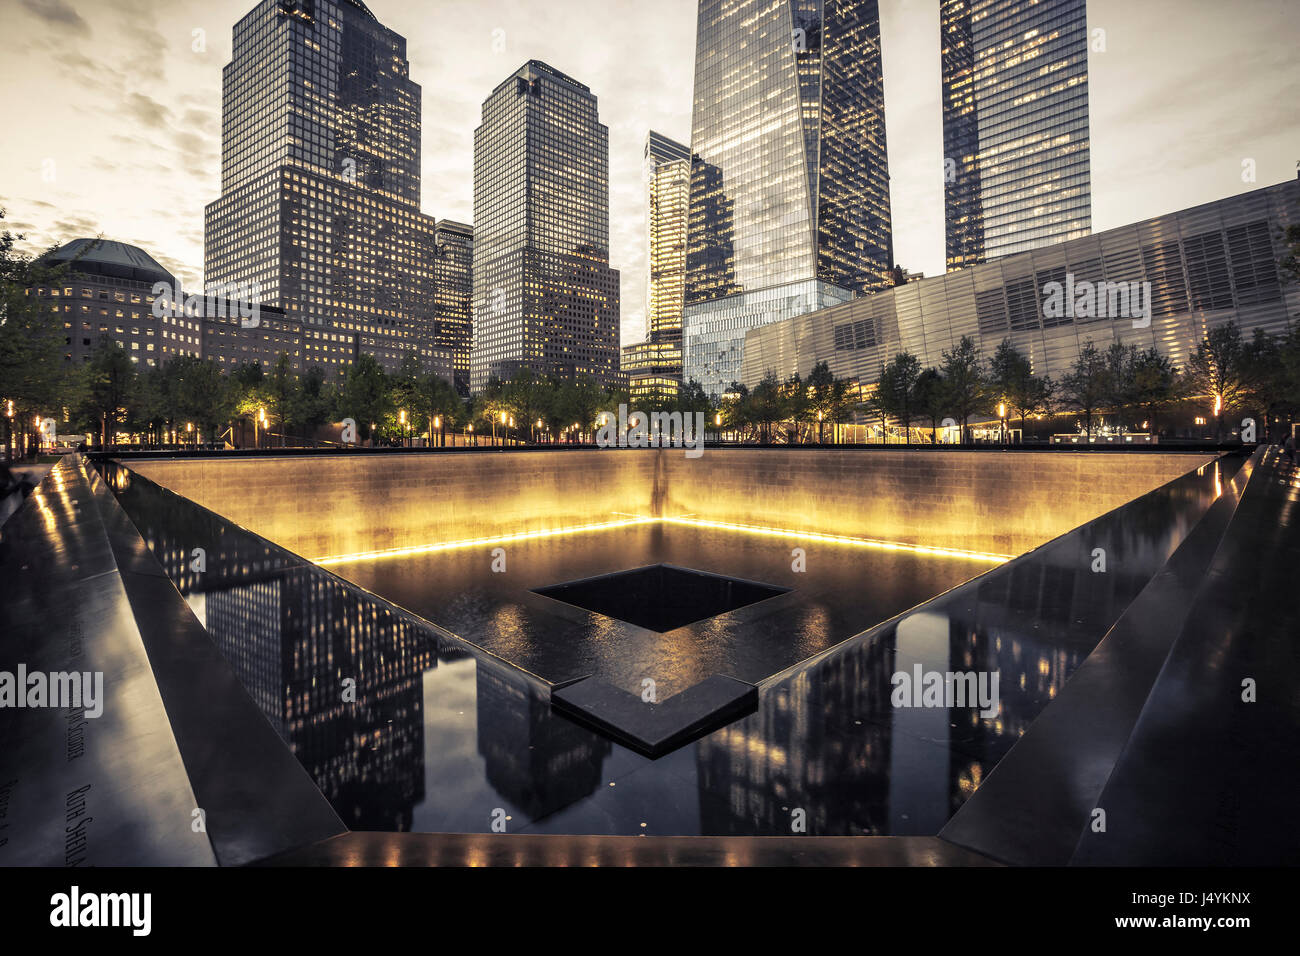 9/11 Memorial, The National September 11 Memorial & Museum - Stock Image